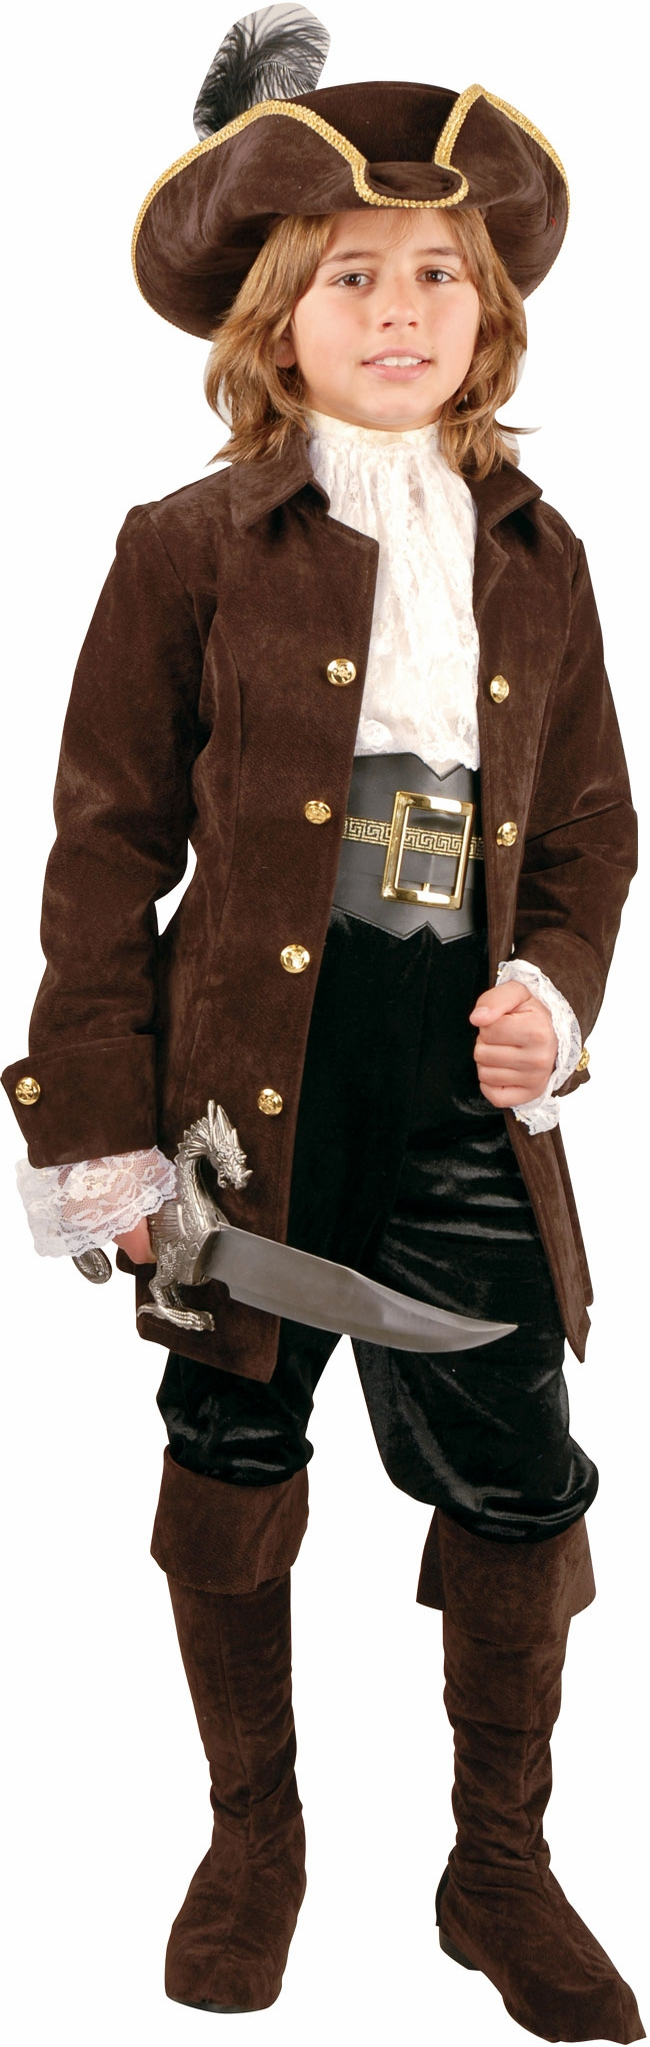 Child's Quality Suede Pirate Costume